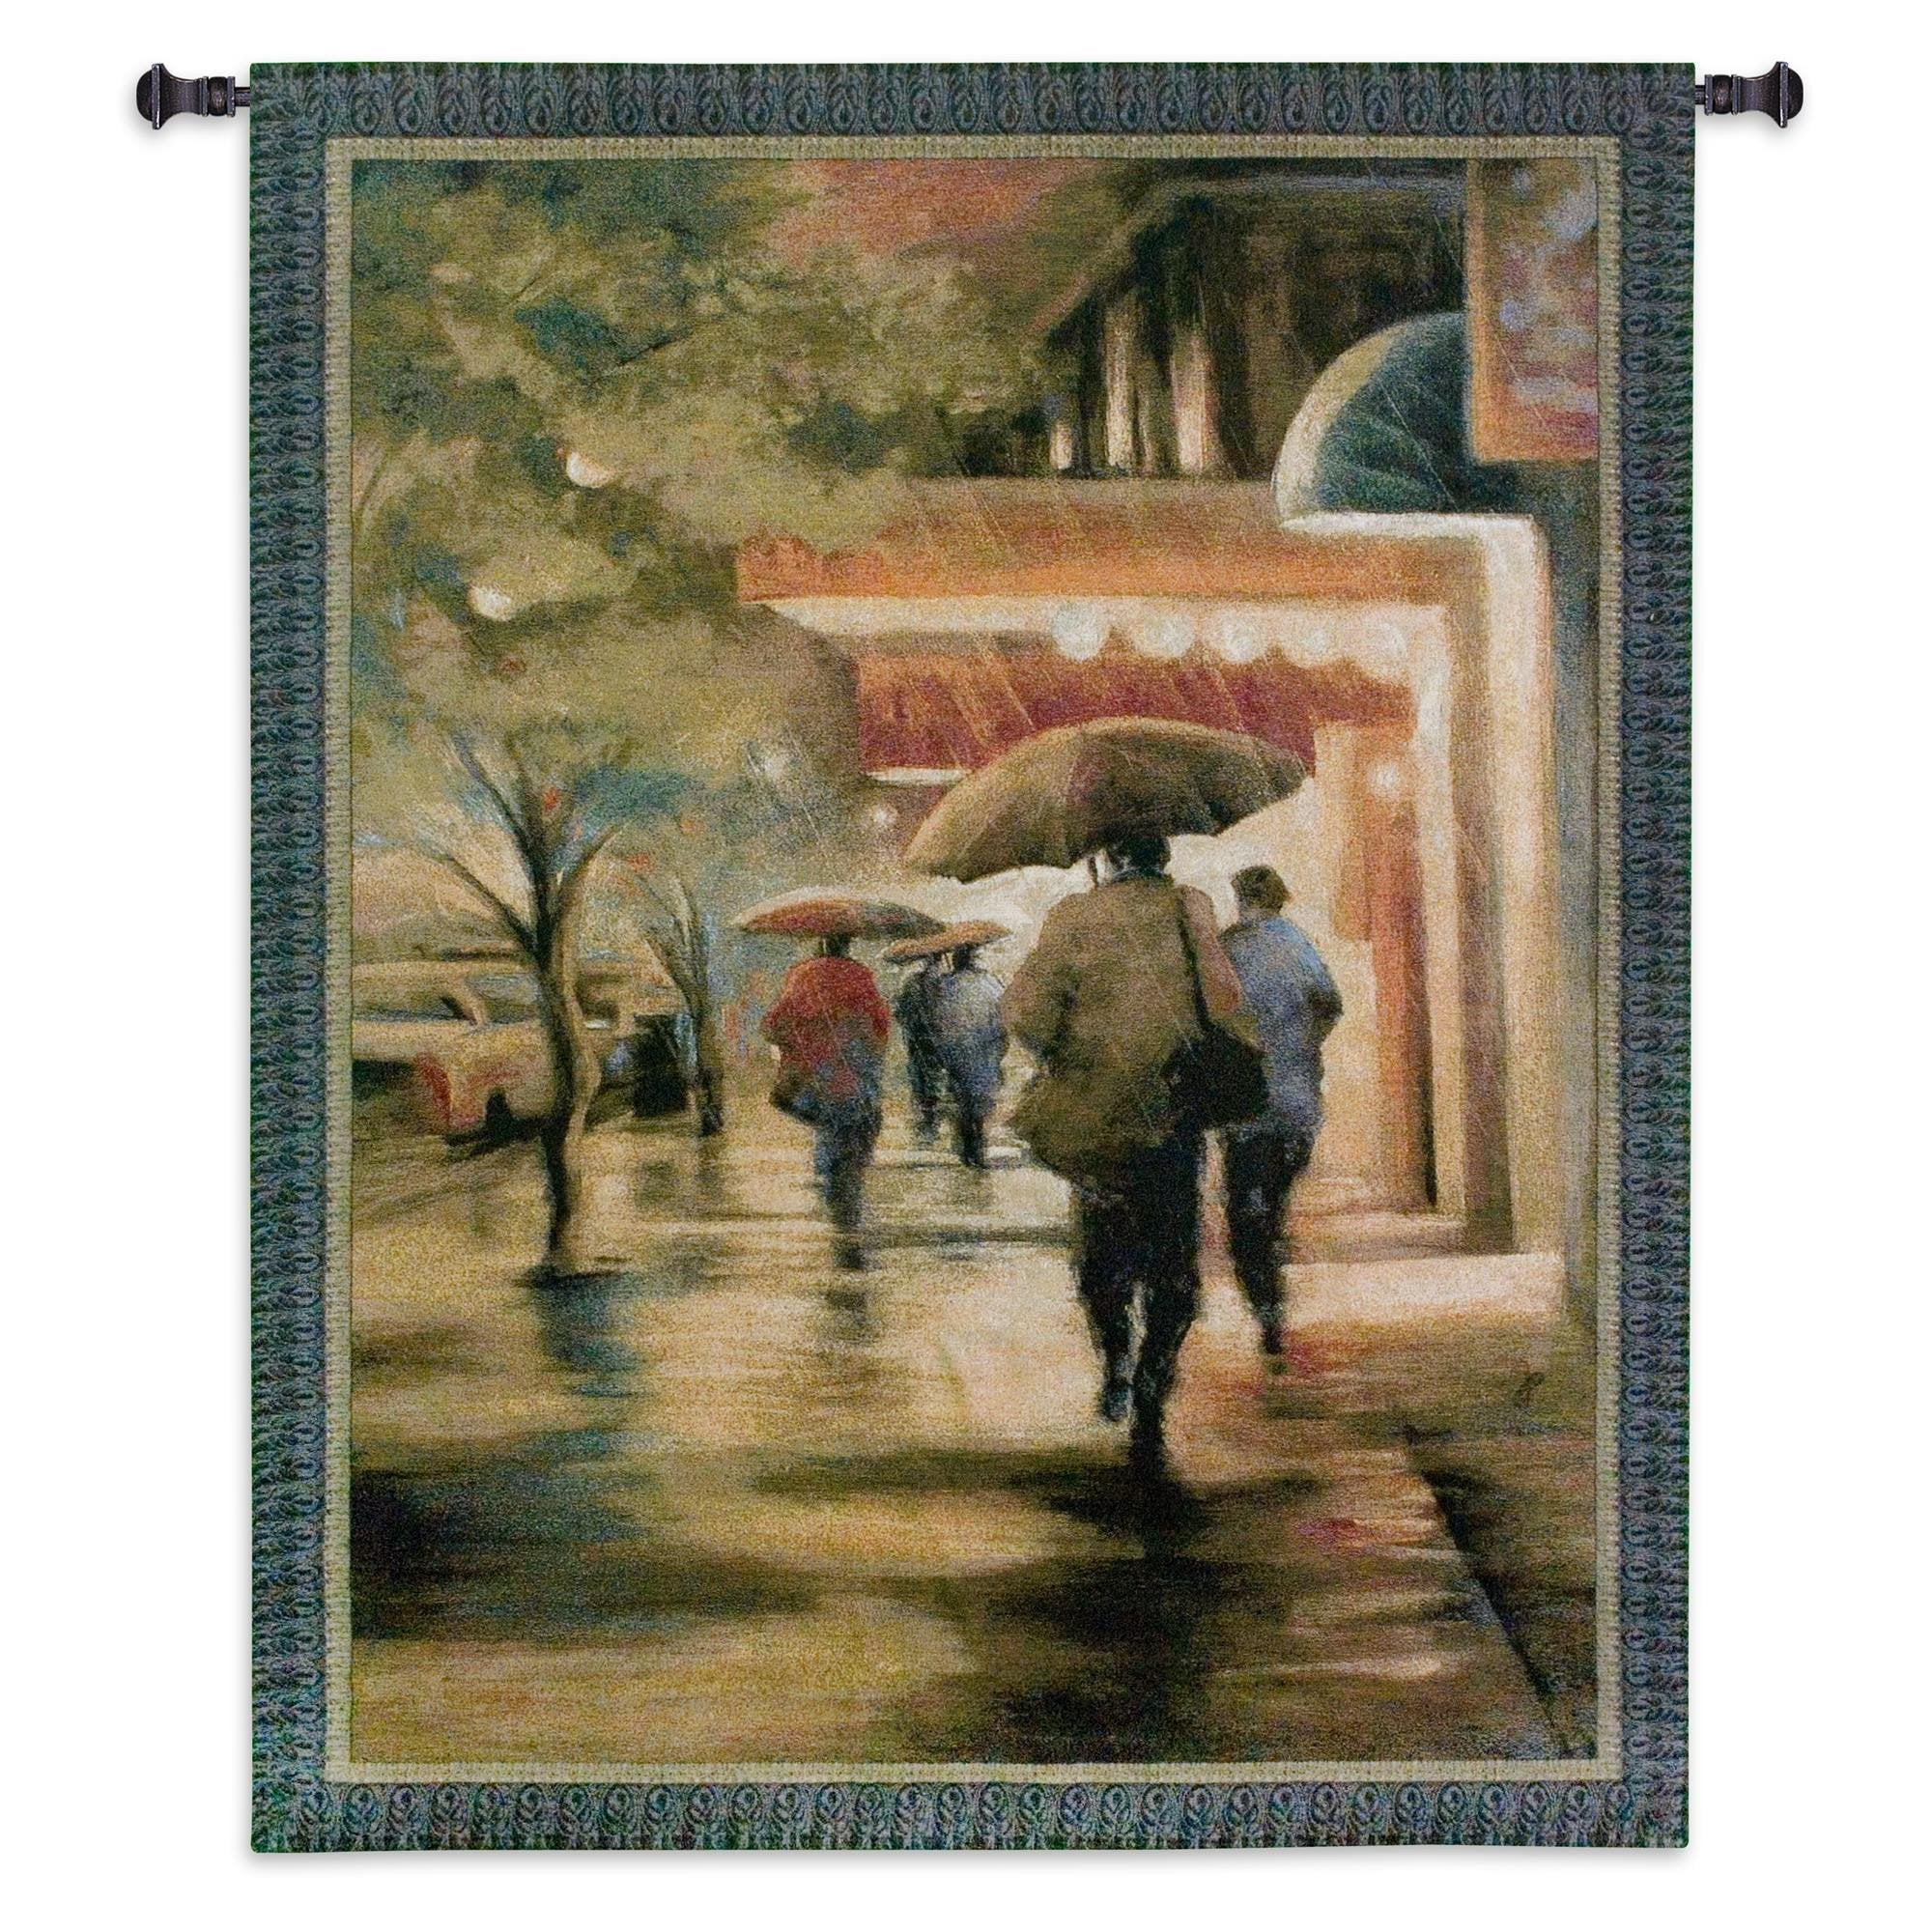 New York City in Evening Rain Wall Woven Textile Art